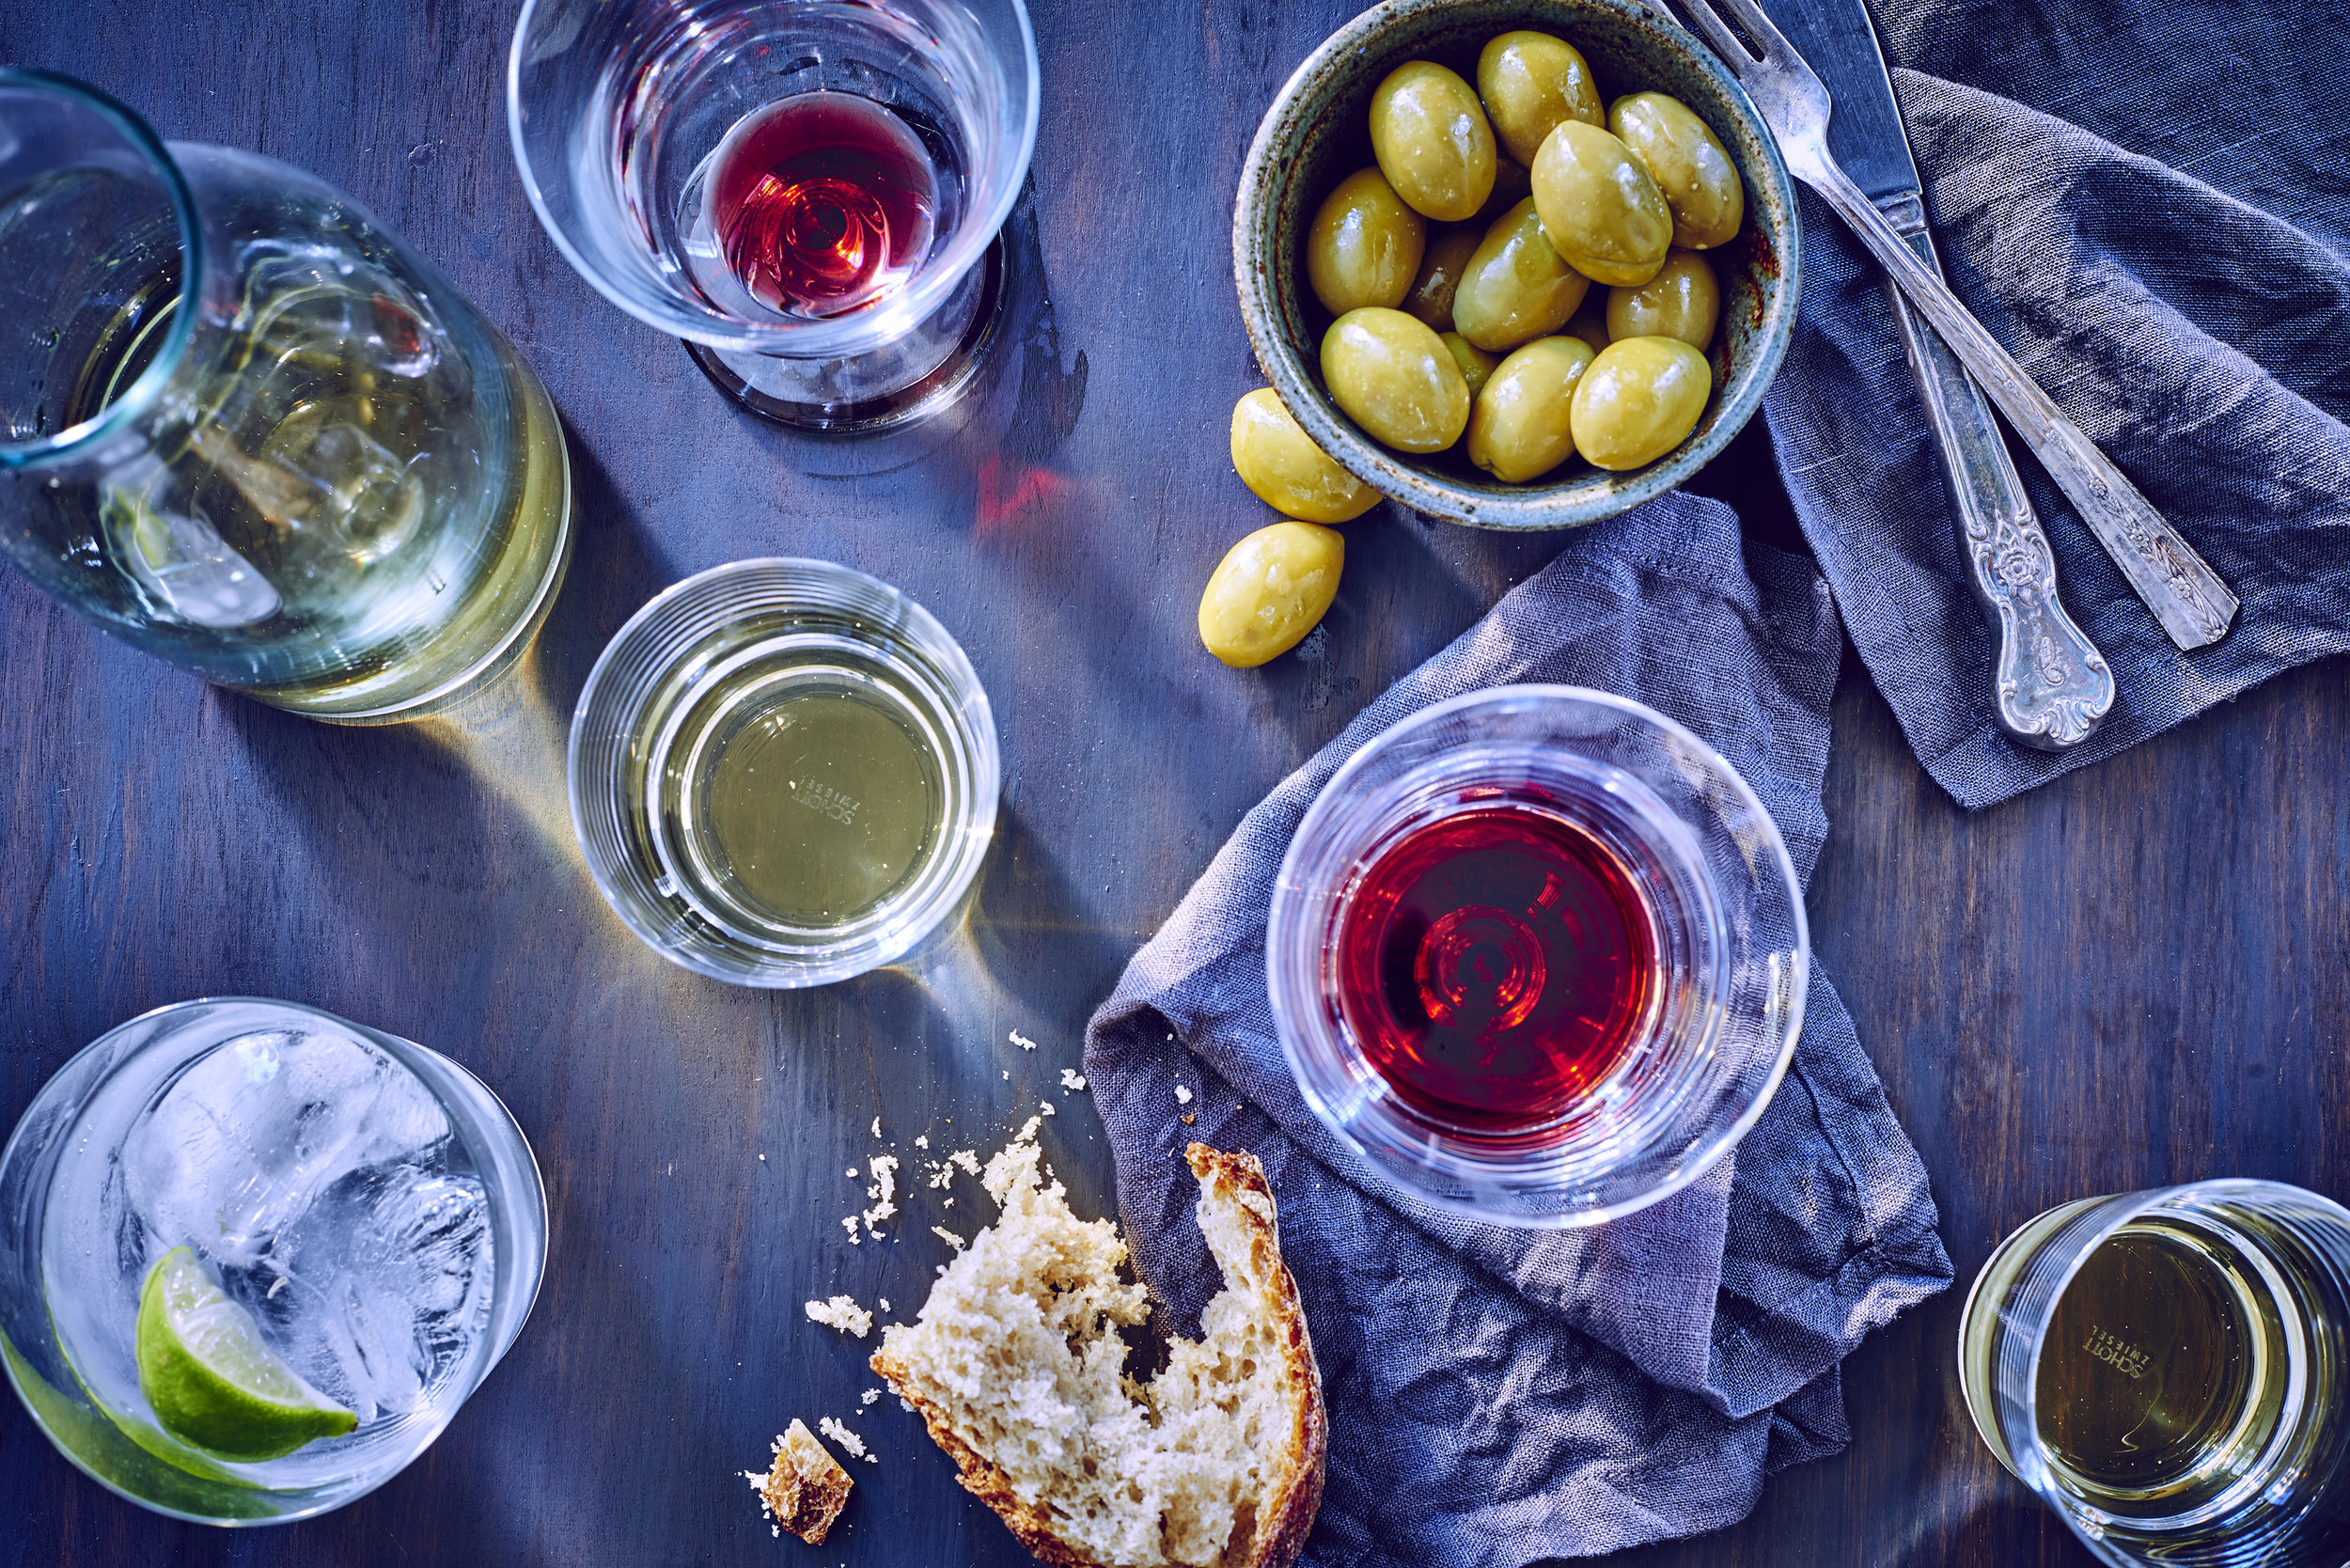 Wine and Olive Table